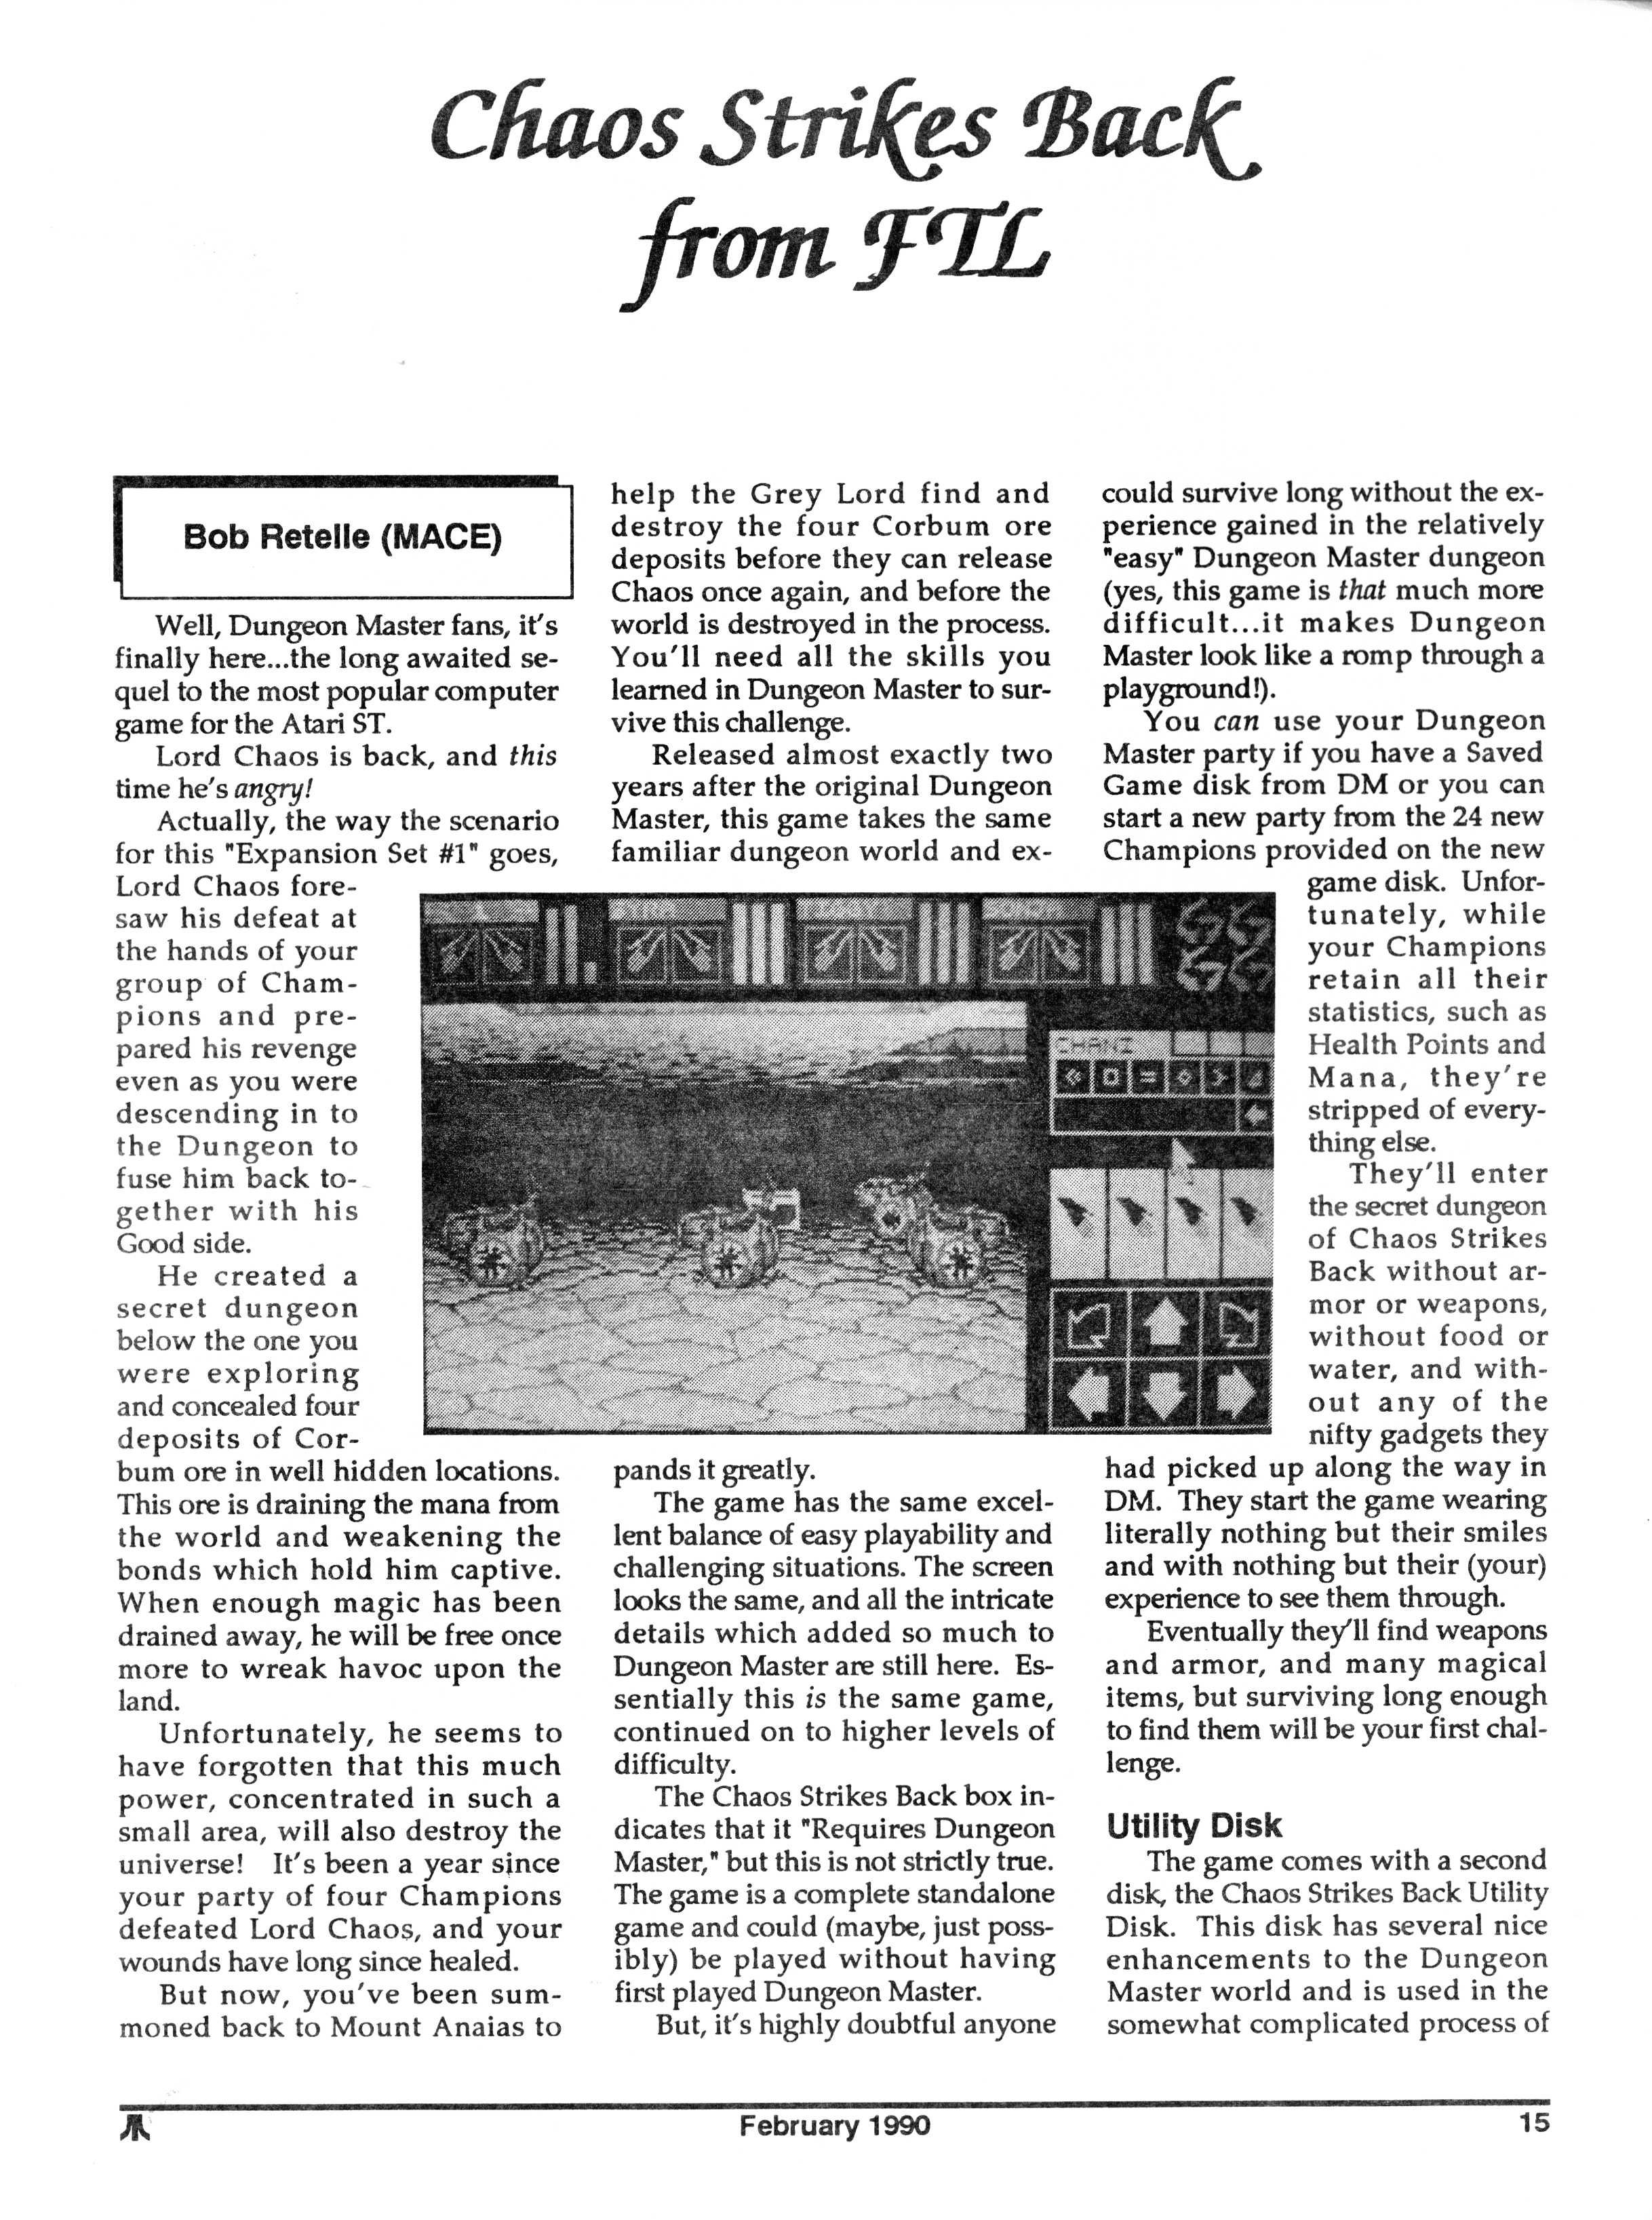 Chaos Strikes Back for Atari ST Review published in American magazine 'Atari Interface Magazine', Vol 2 No 2 February 1990, Page 15